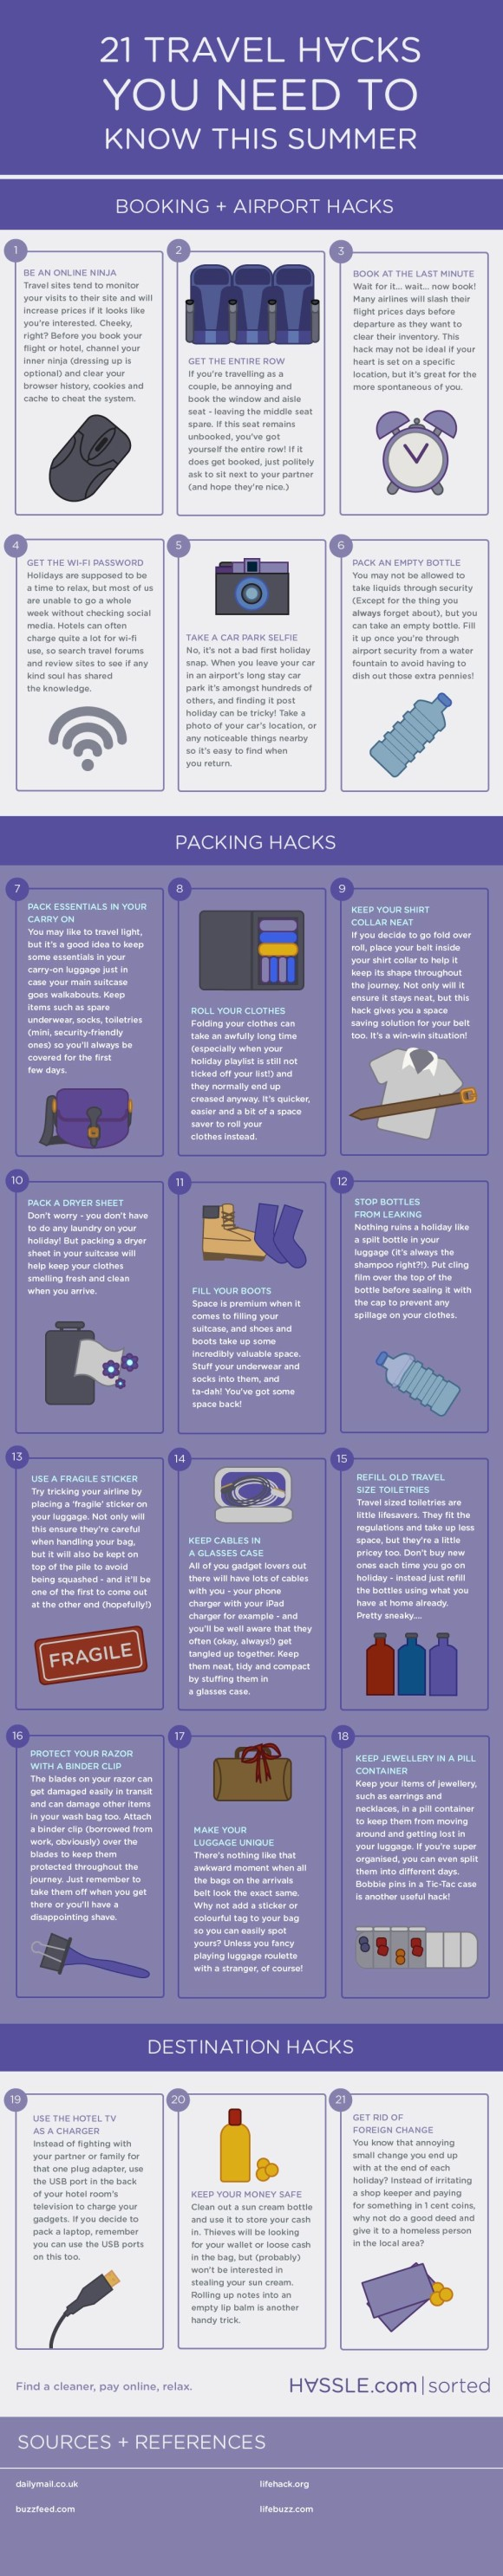 travel-hacks-infographic-plaza